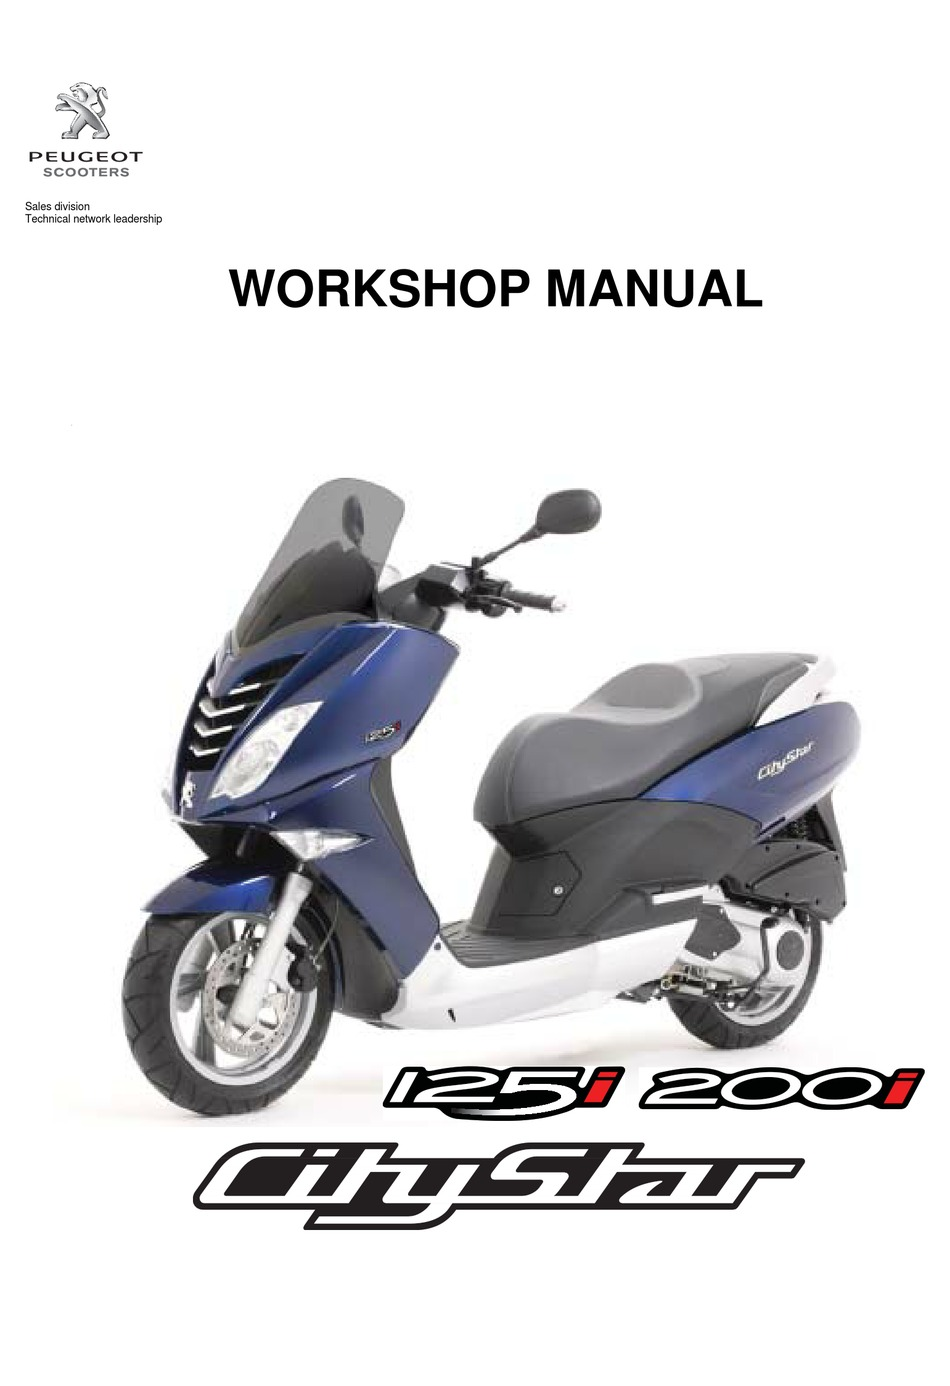 Peugeot Motorcycles Citystar 125i Workshop Manual Pdf Download Manualslib